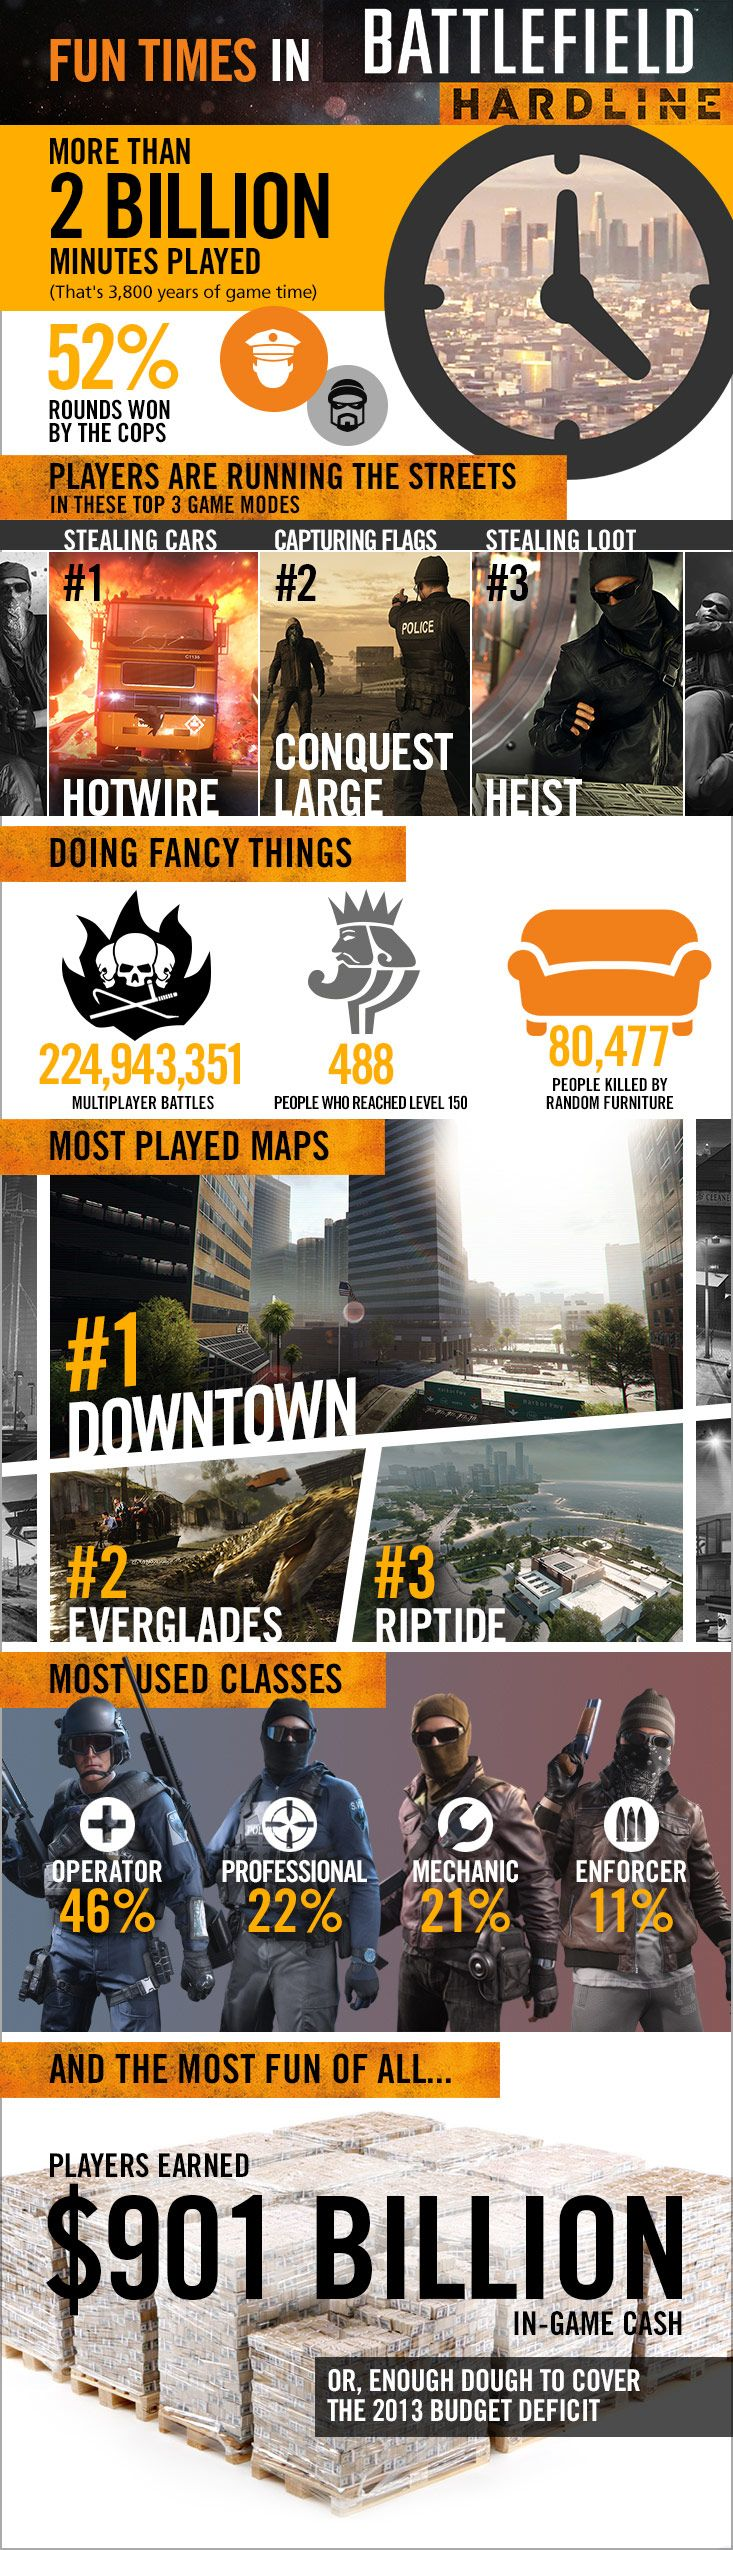 Fun Times in Battlefield Hardline - Battlefield - Official EA Site